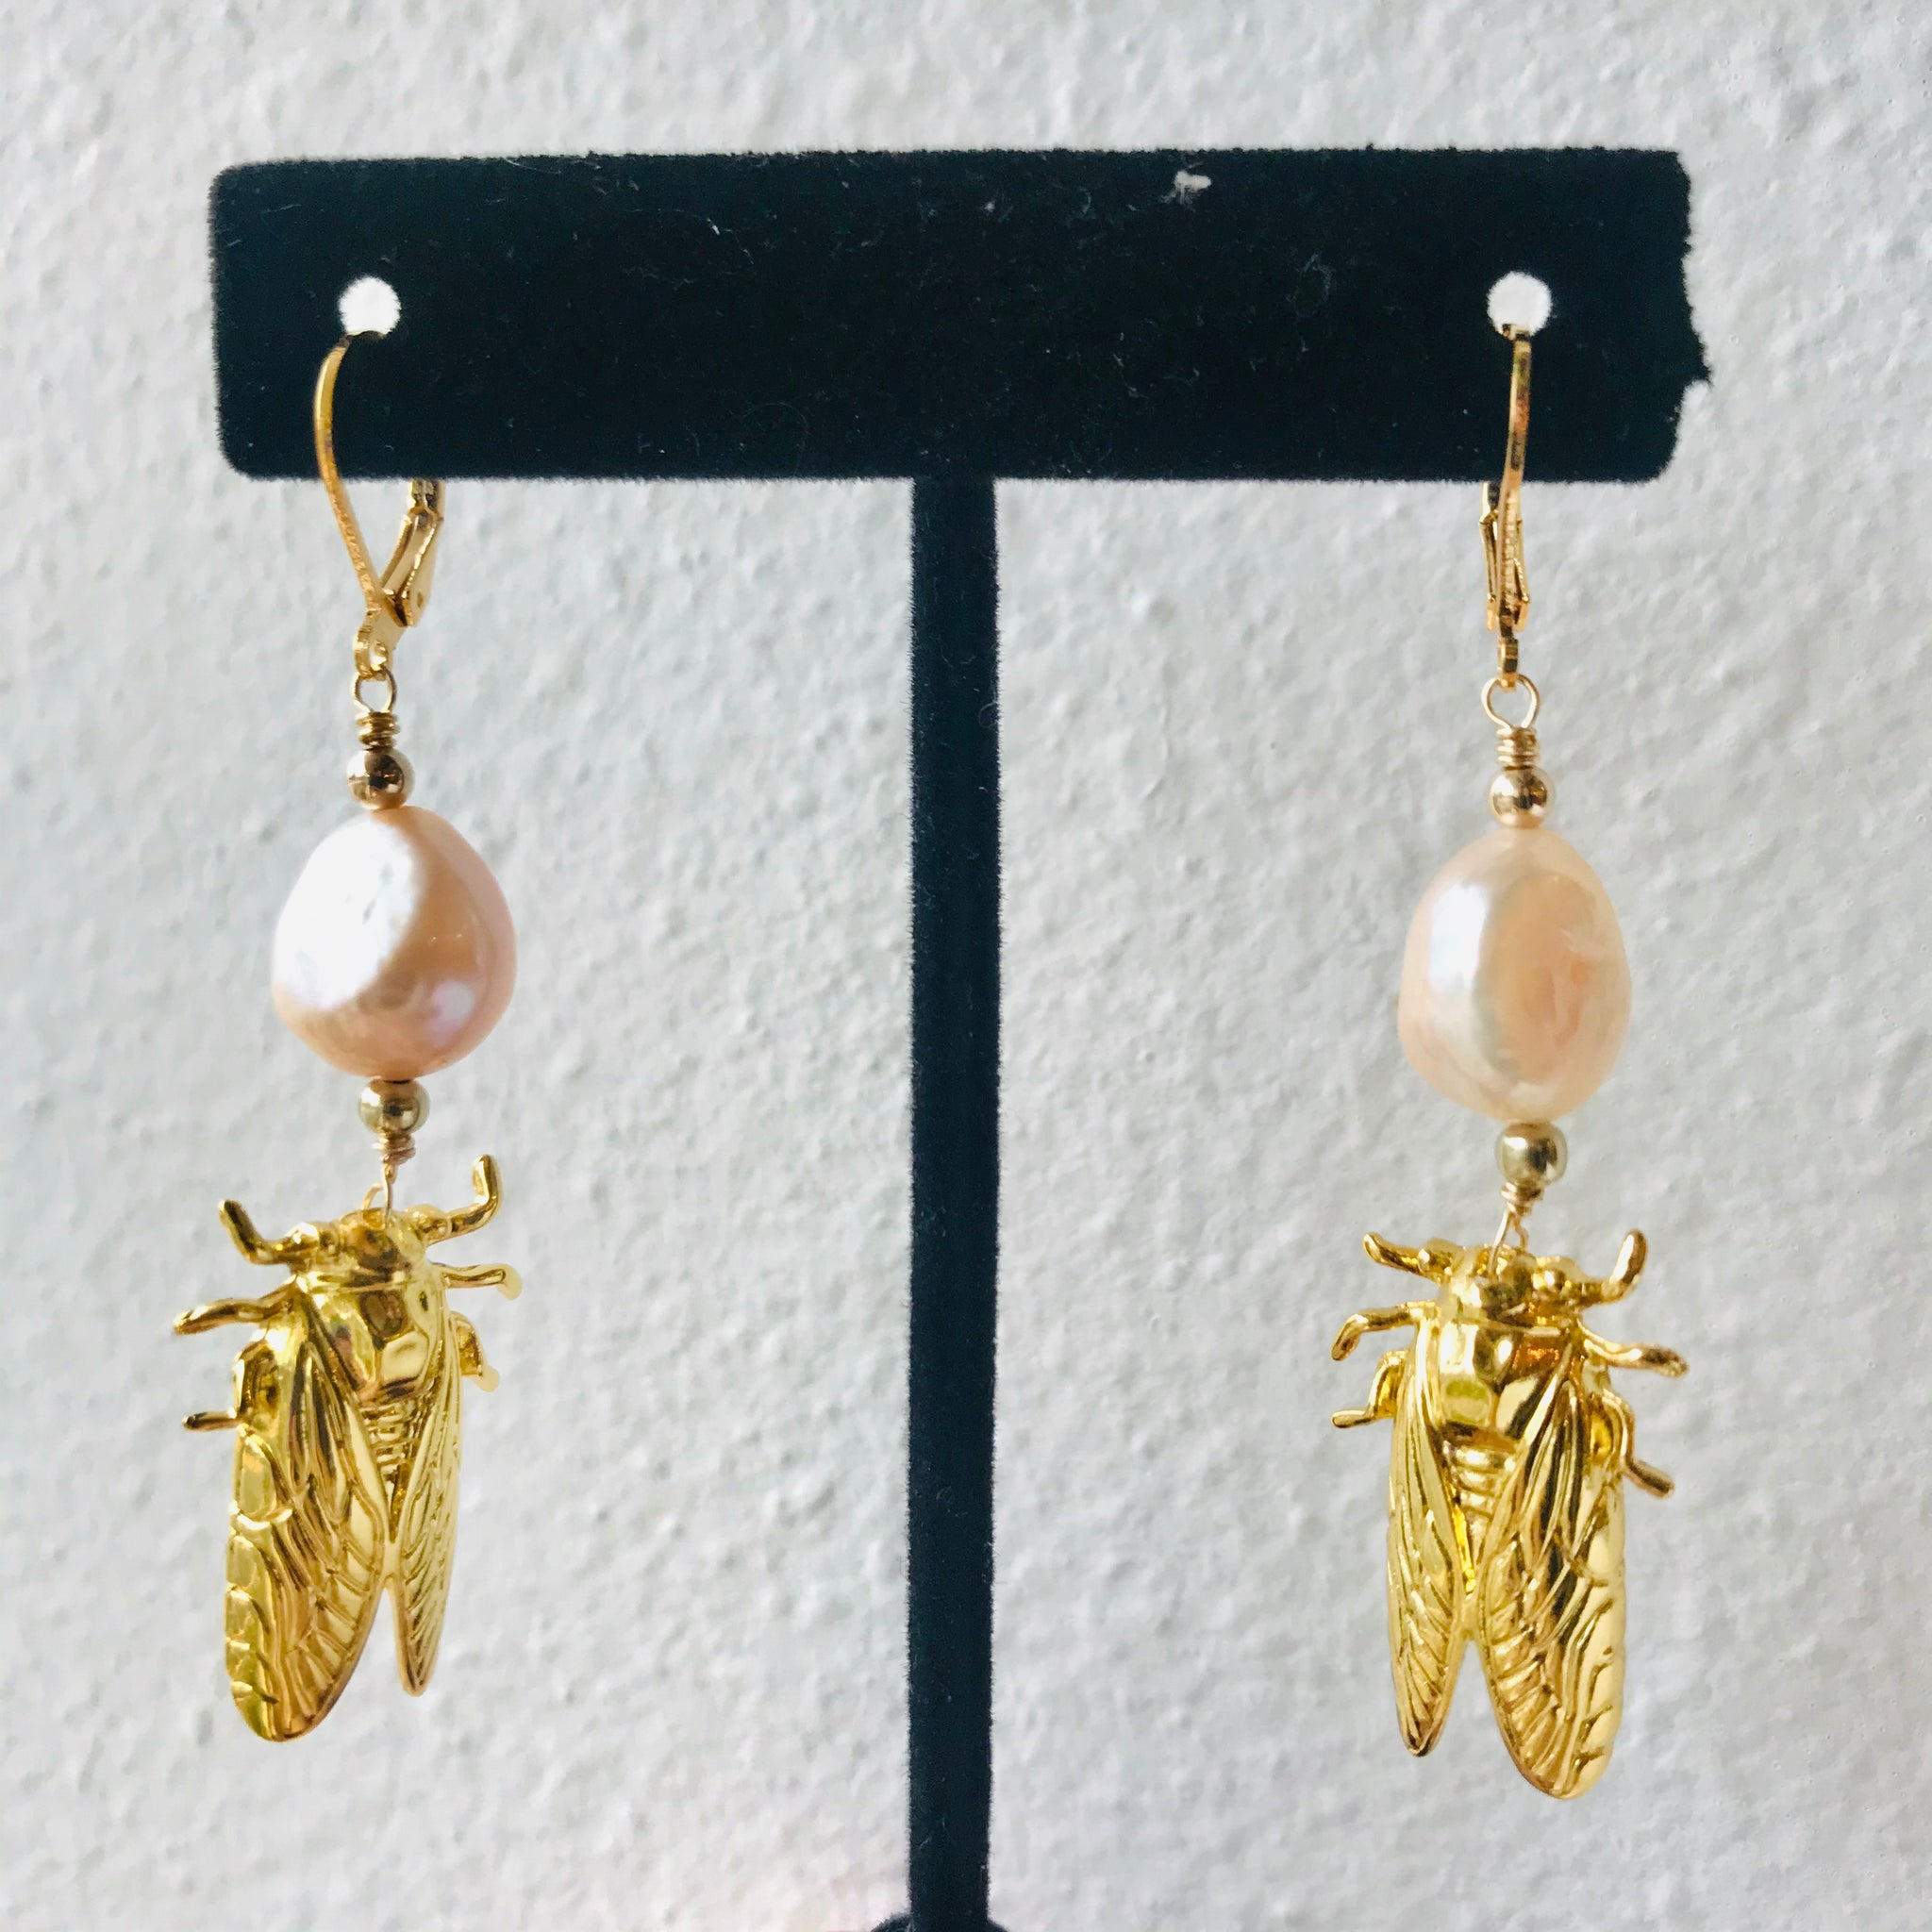 Small Cicada Earrings with Freshwater Pearls - 318 Art and Garden